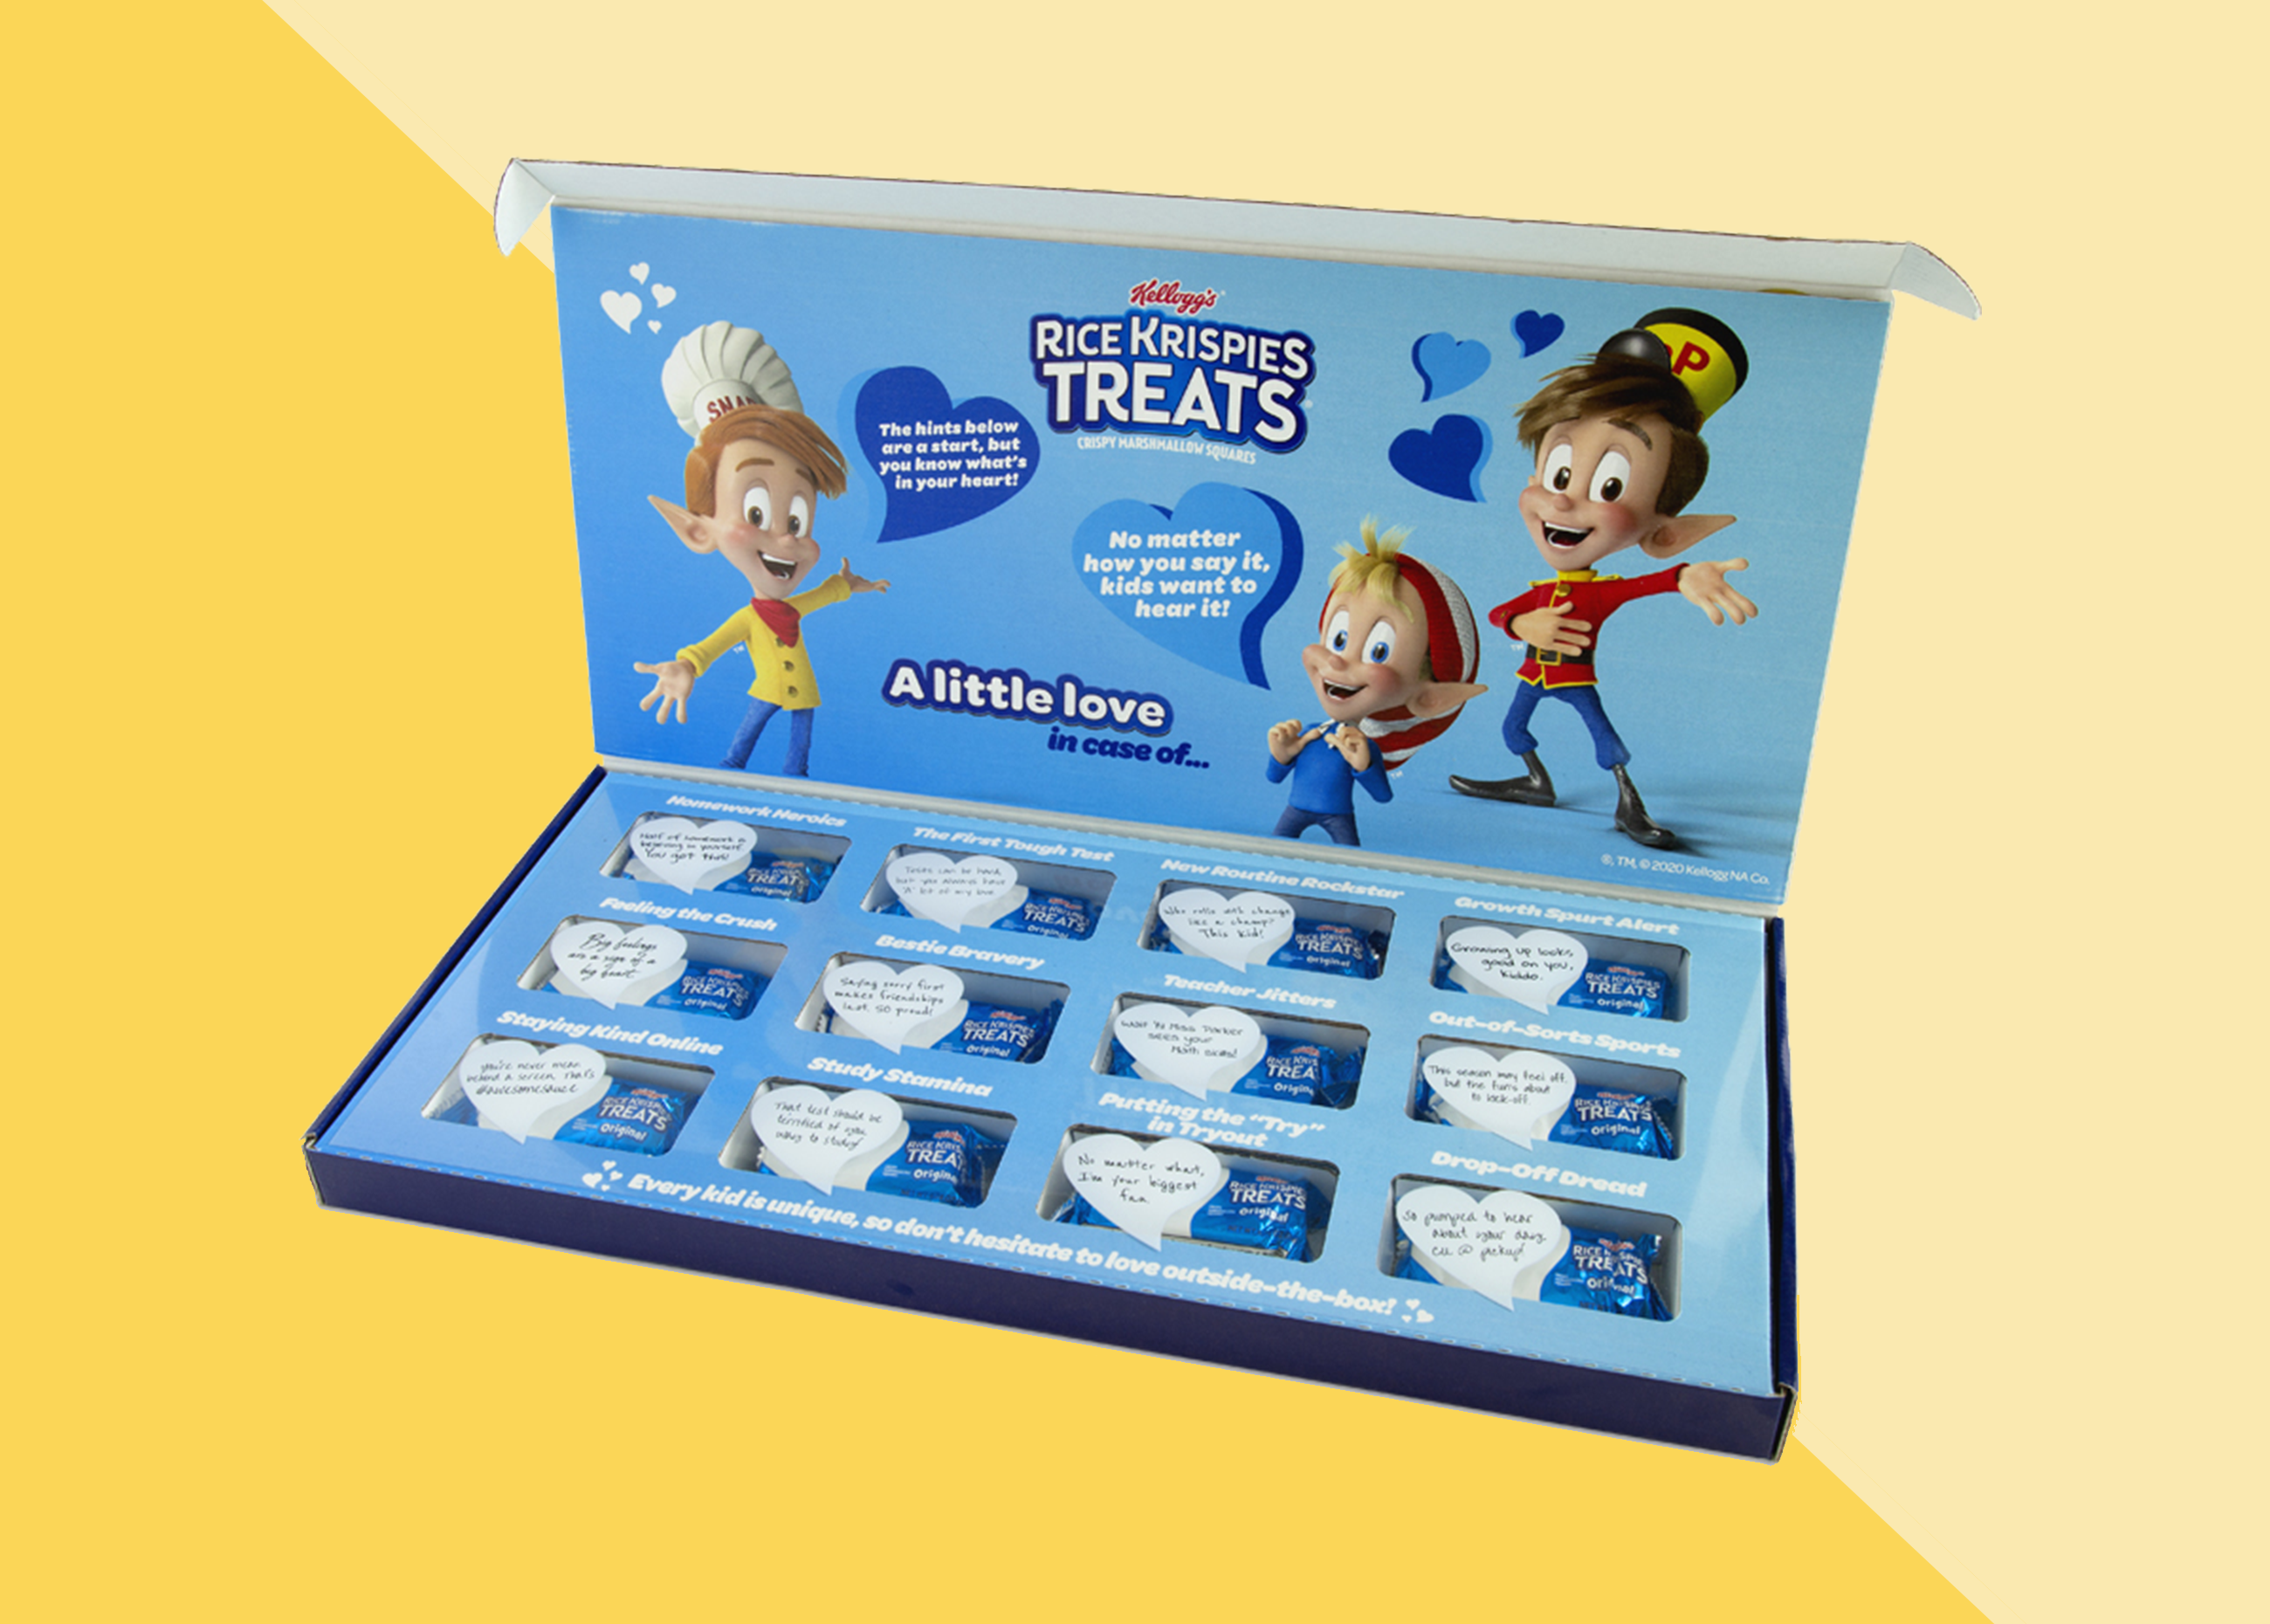 A box of rice krispies treats with 12 individually-wrapped treats